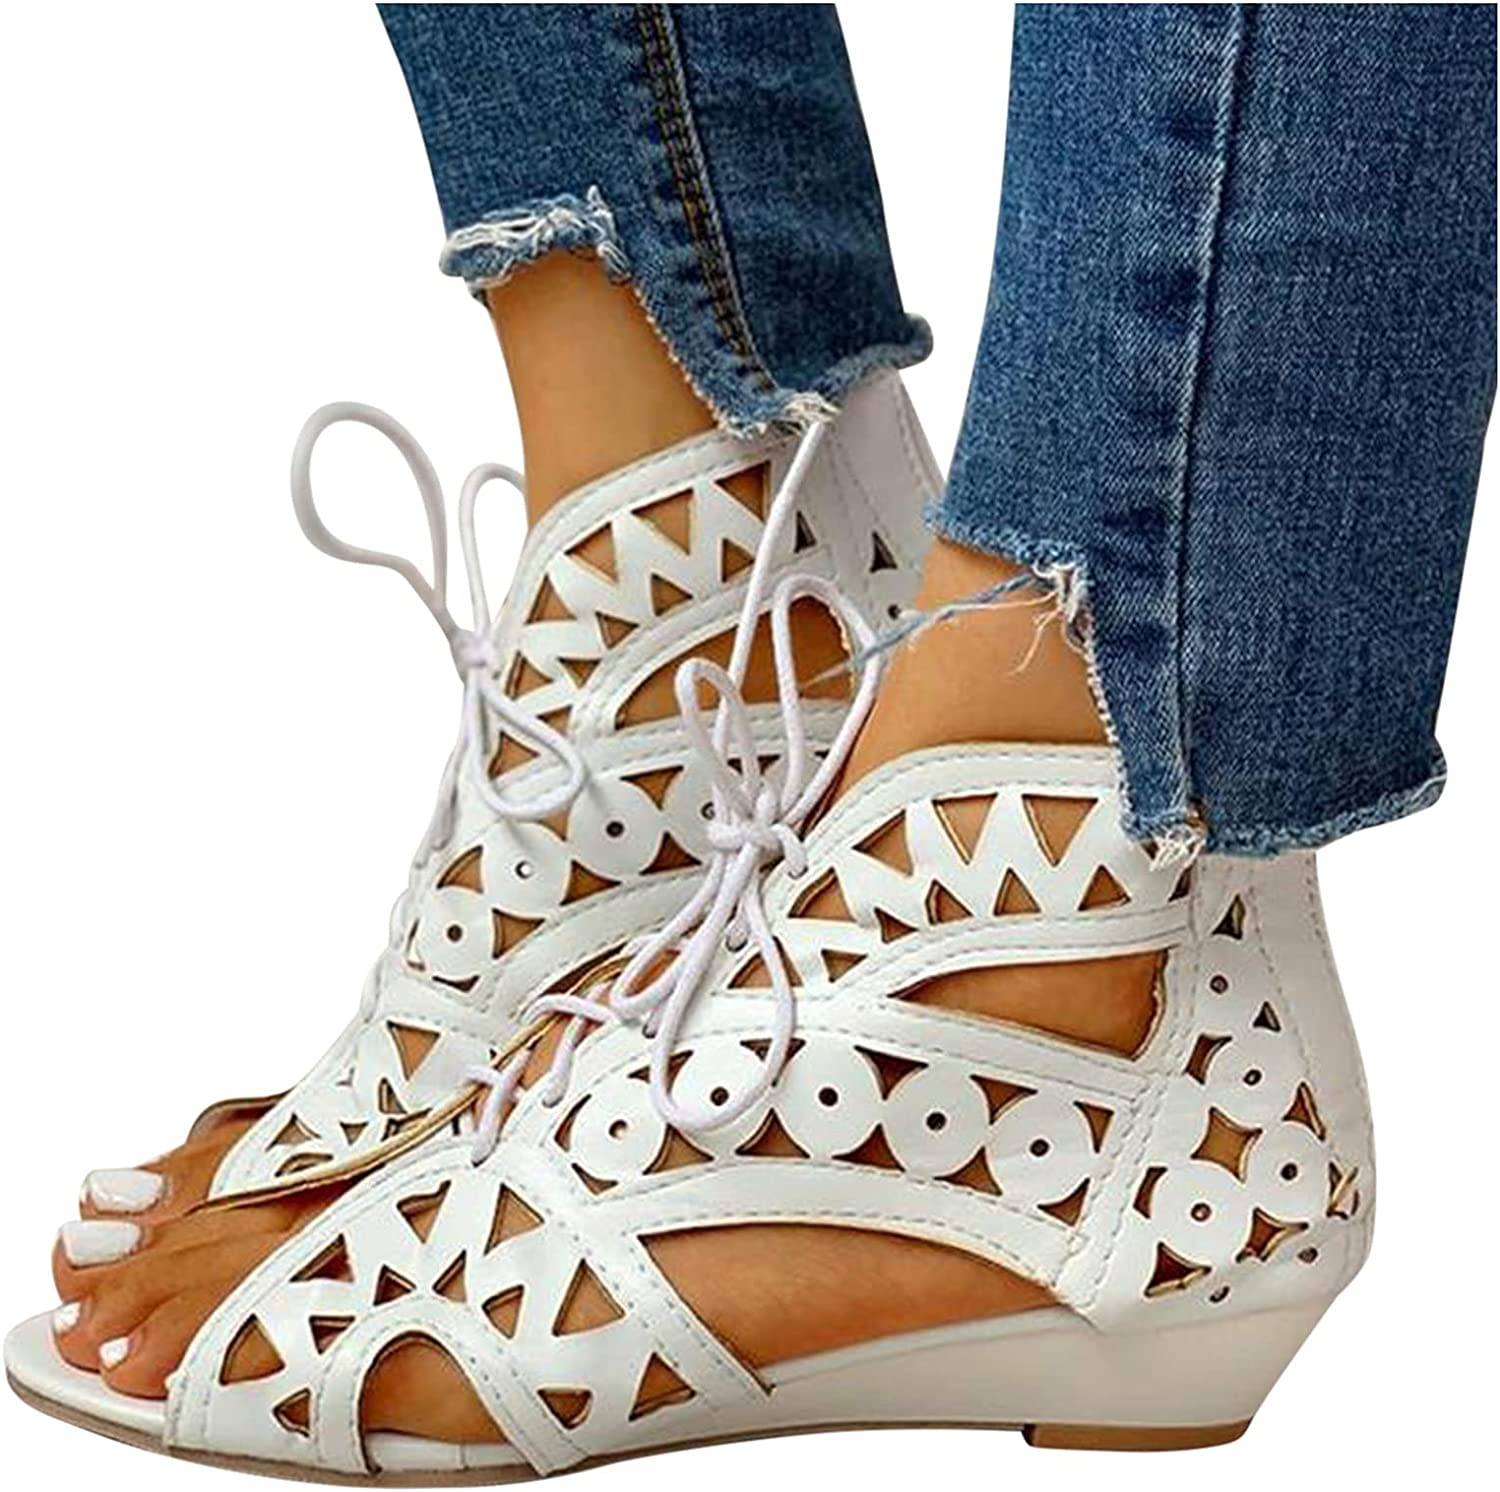 JIEXIJIA Sandals for Max 51% OFF Women - Casual Summer Hollow store We Out Crystal